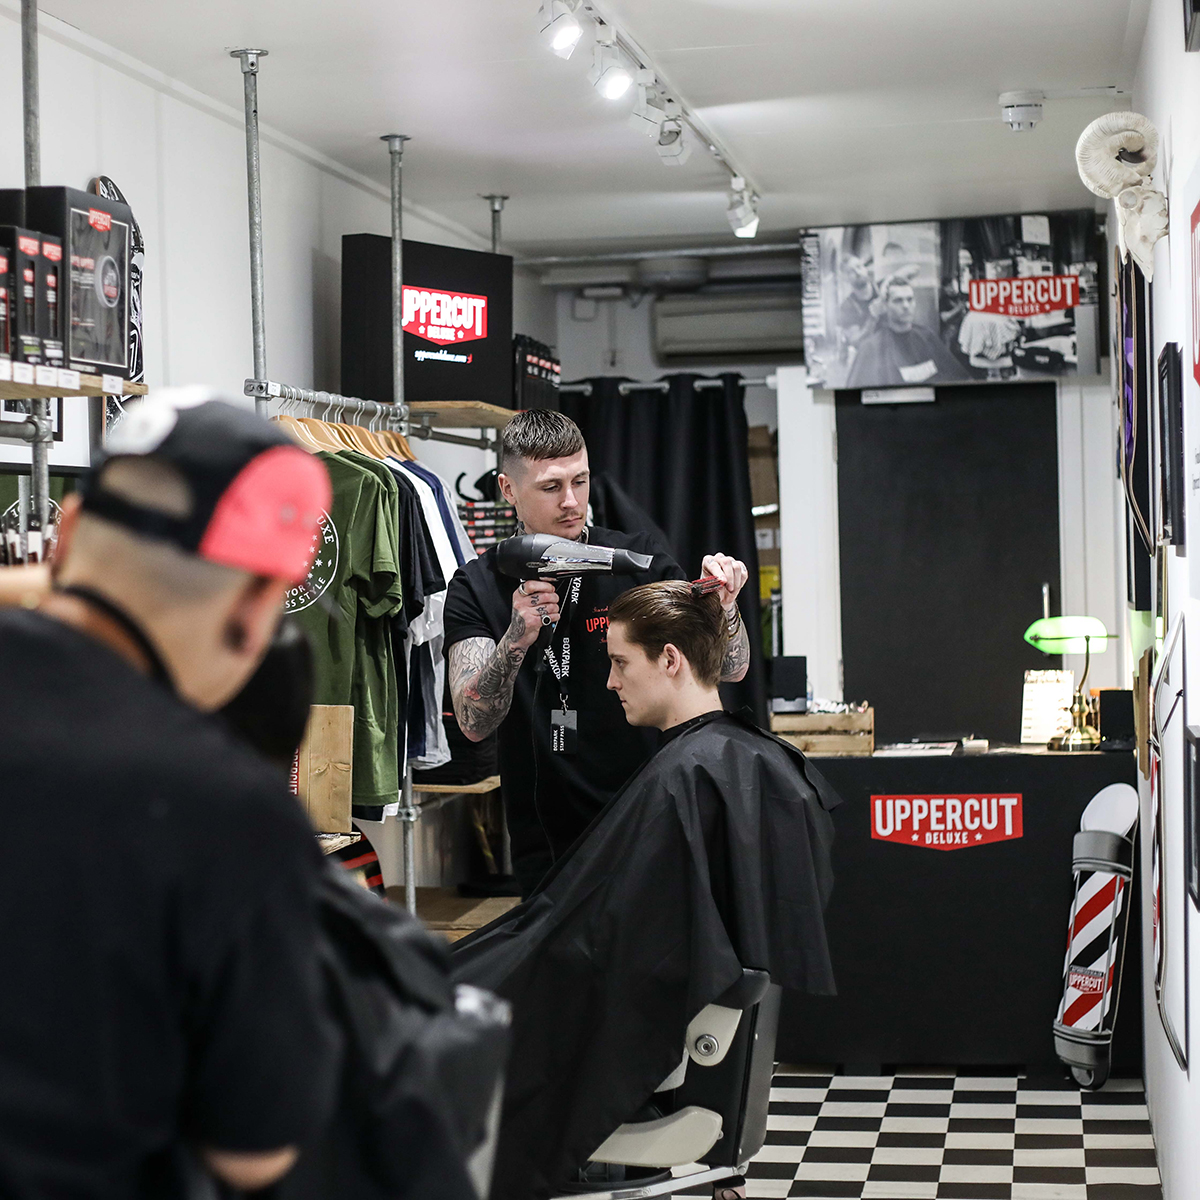 http://www.portersbarbers.co.uk/wp-content/uploads/UPPERCUT-2.jpg